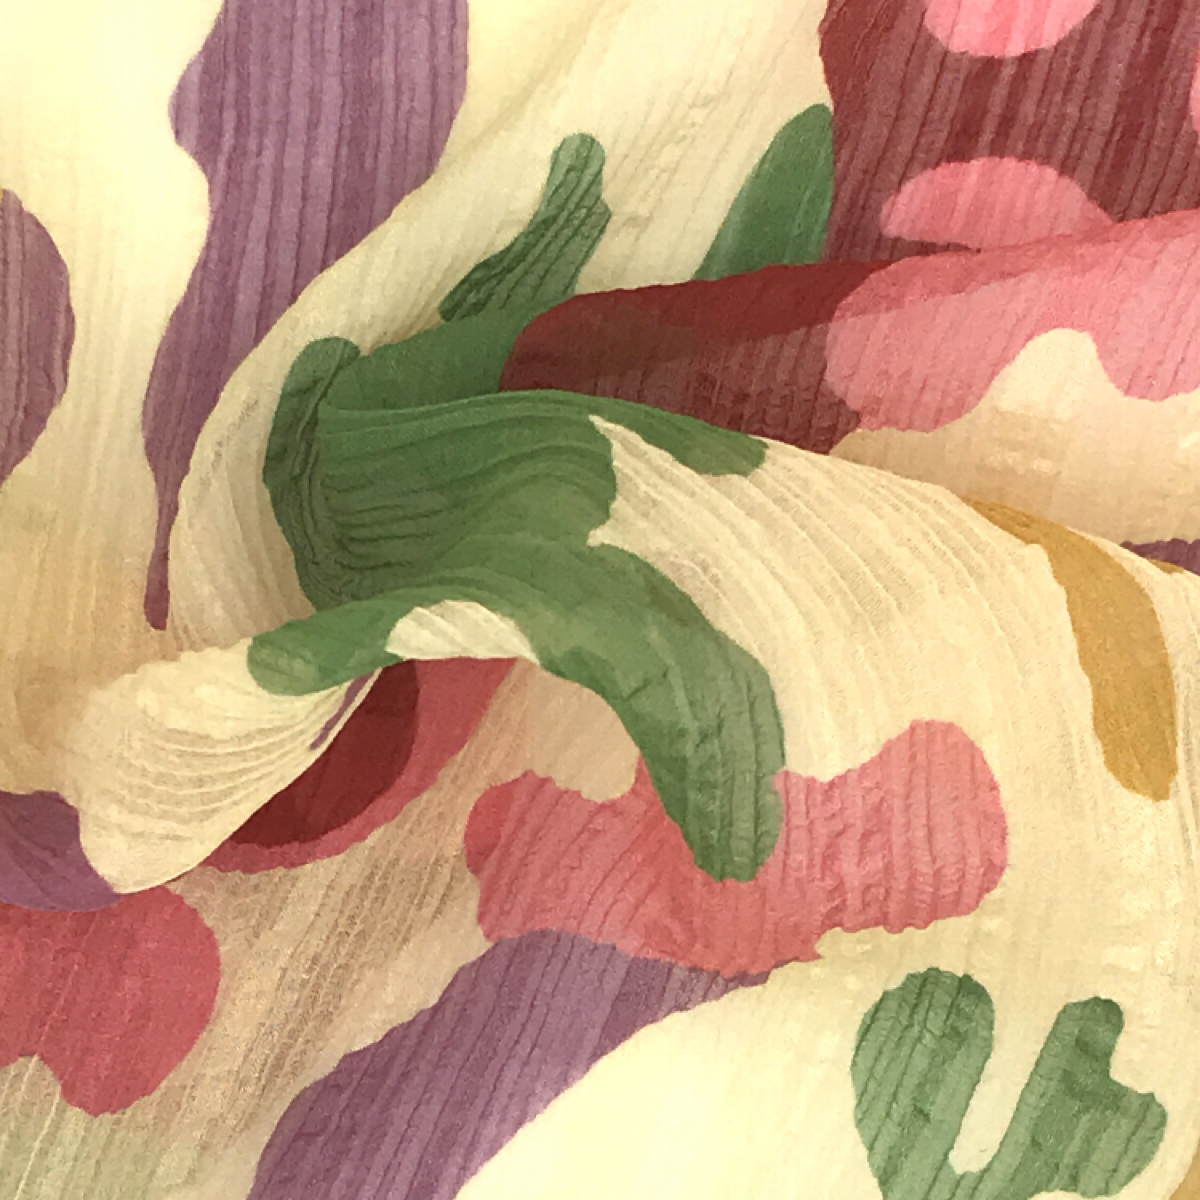 Pastel Yellow, Green, Purple, and Pink Printed Fine Woven Textile by Beach & Body by Clerici Tessuto